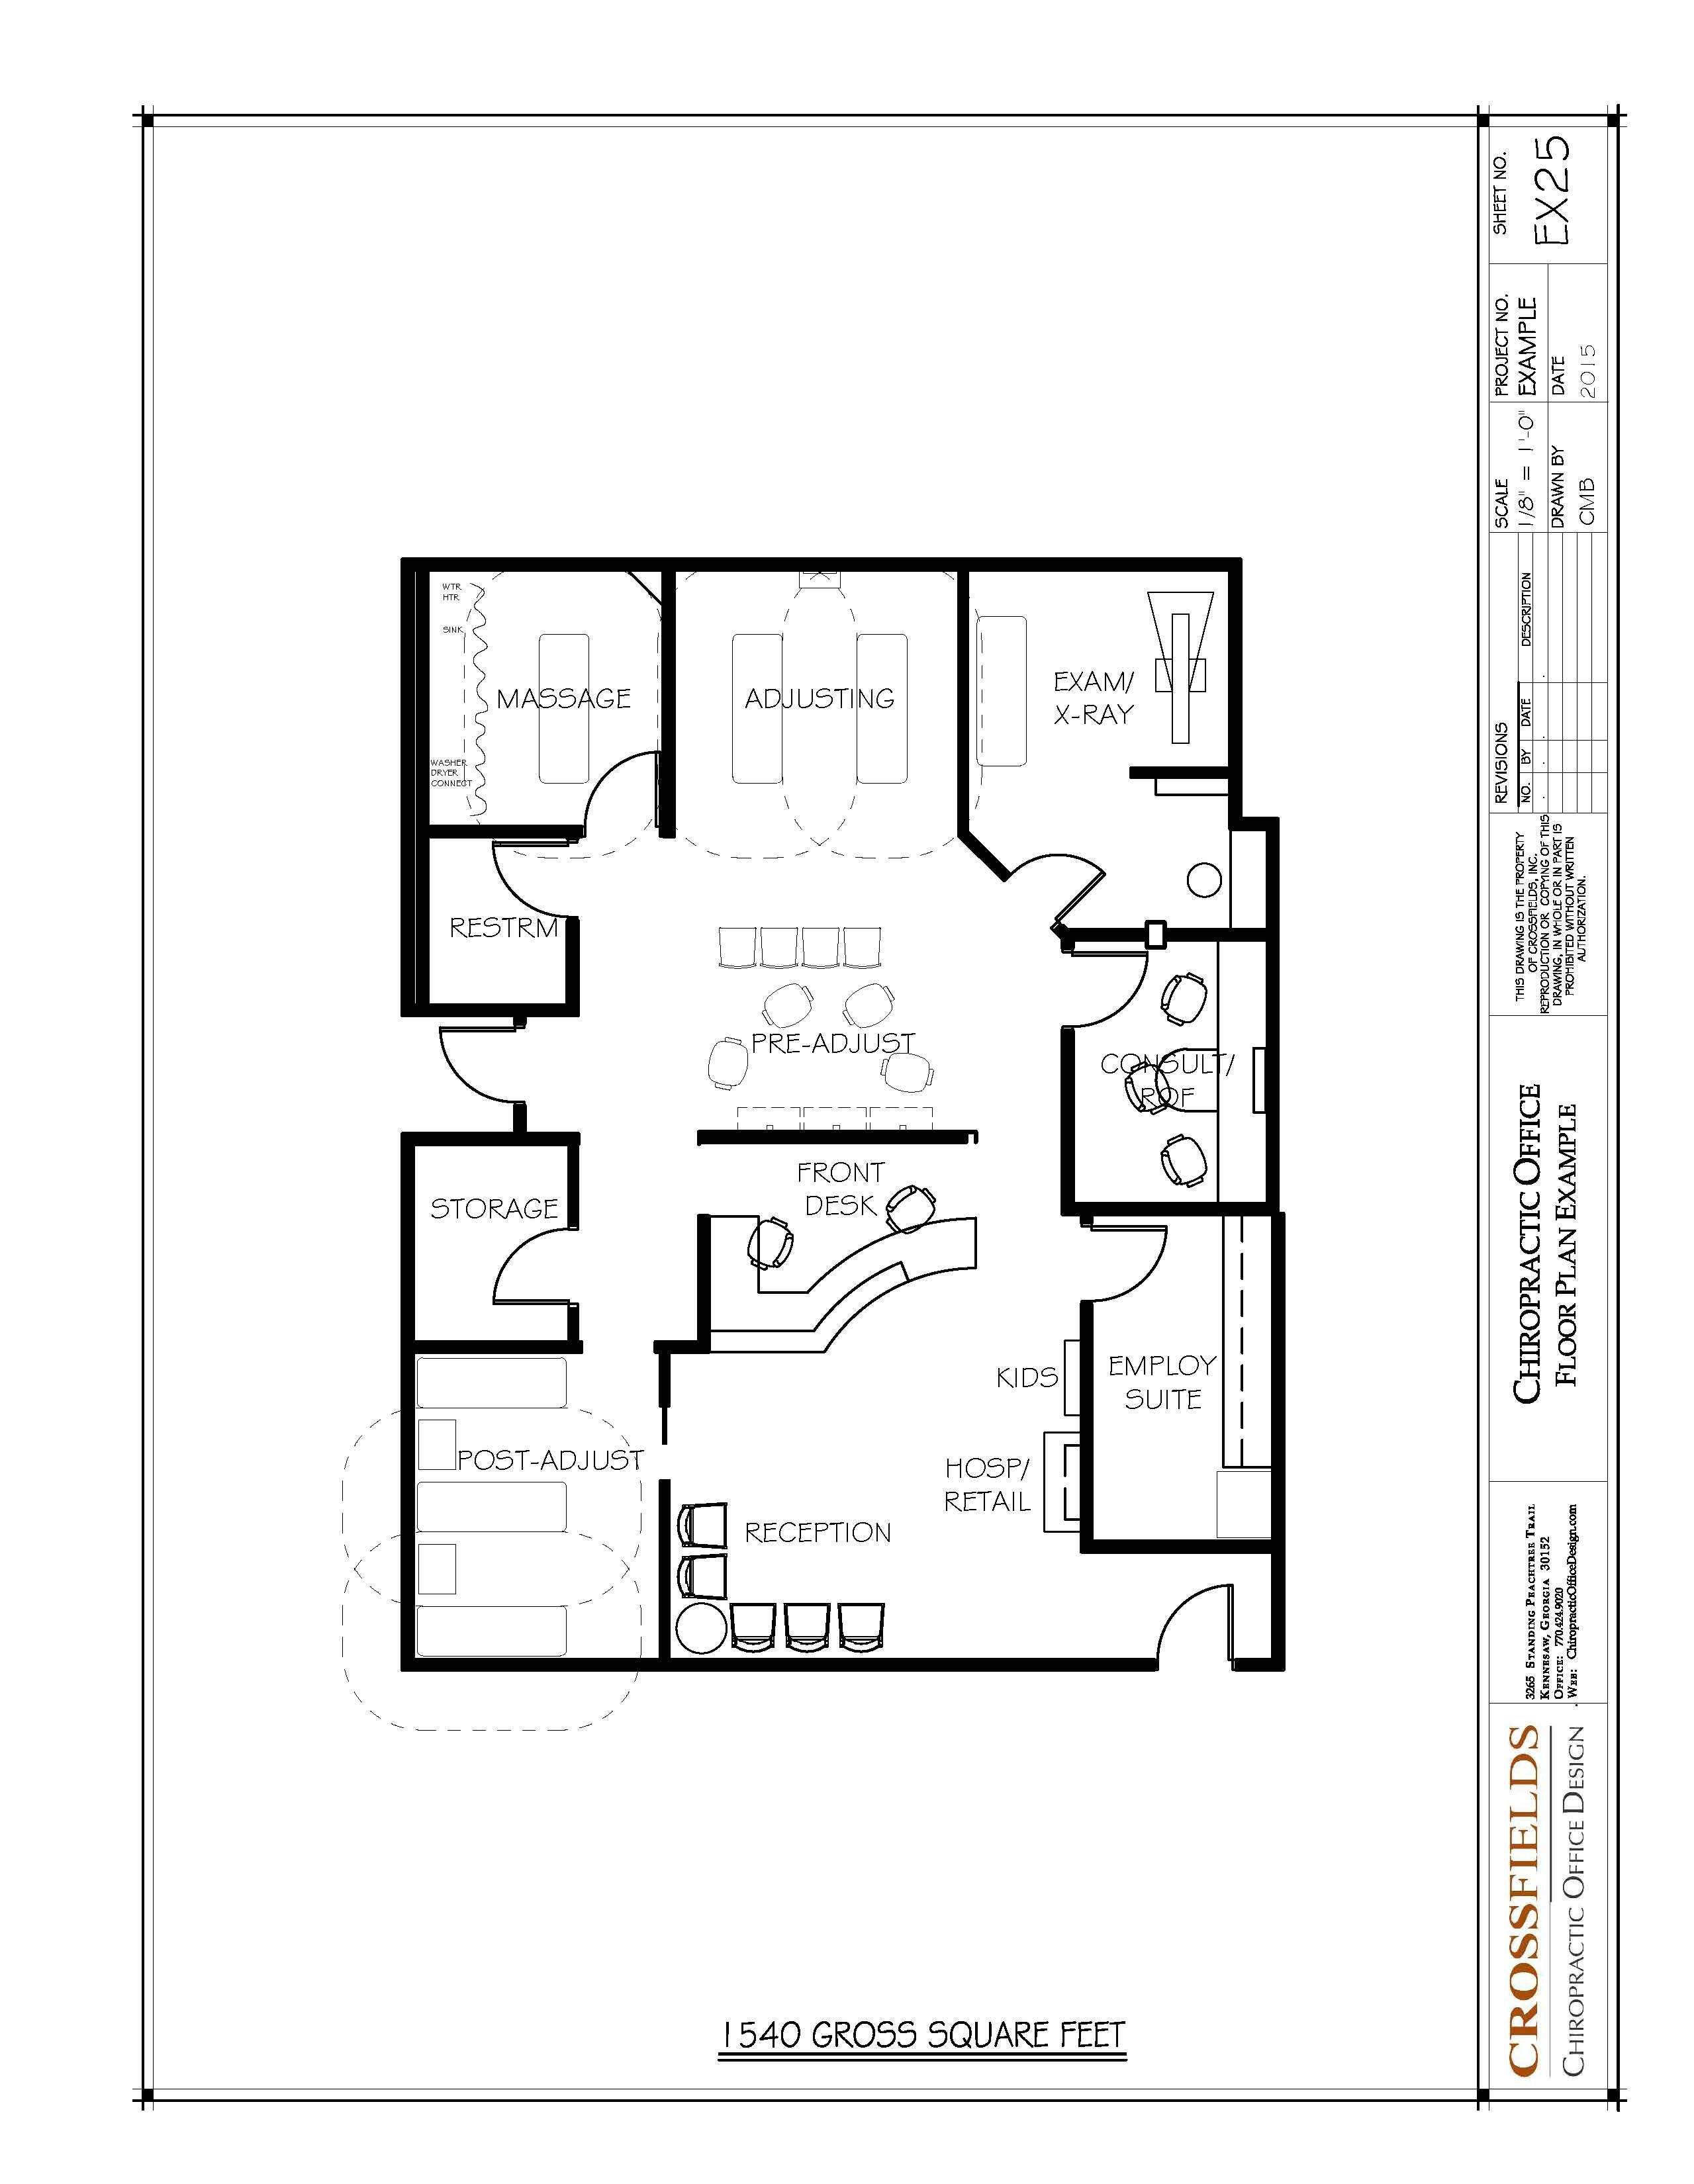 Chiropractic office floor plans pinteres for Floor layout